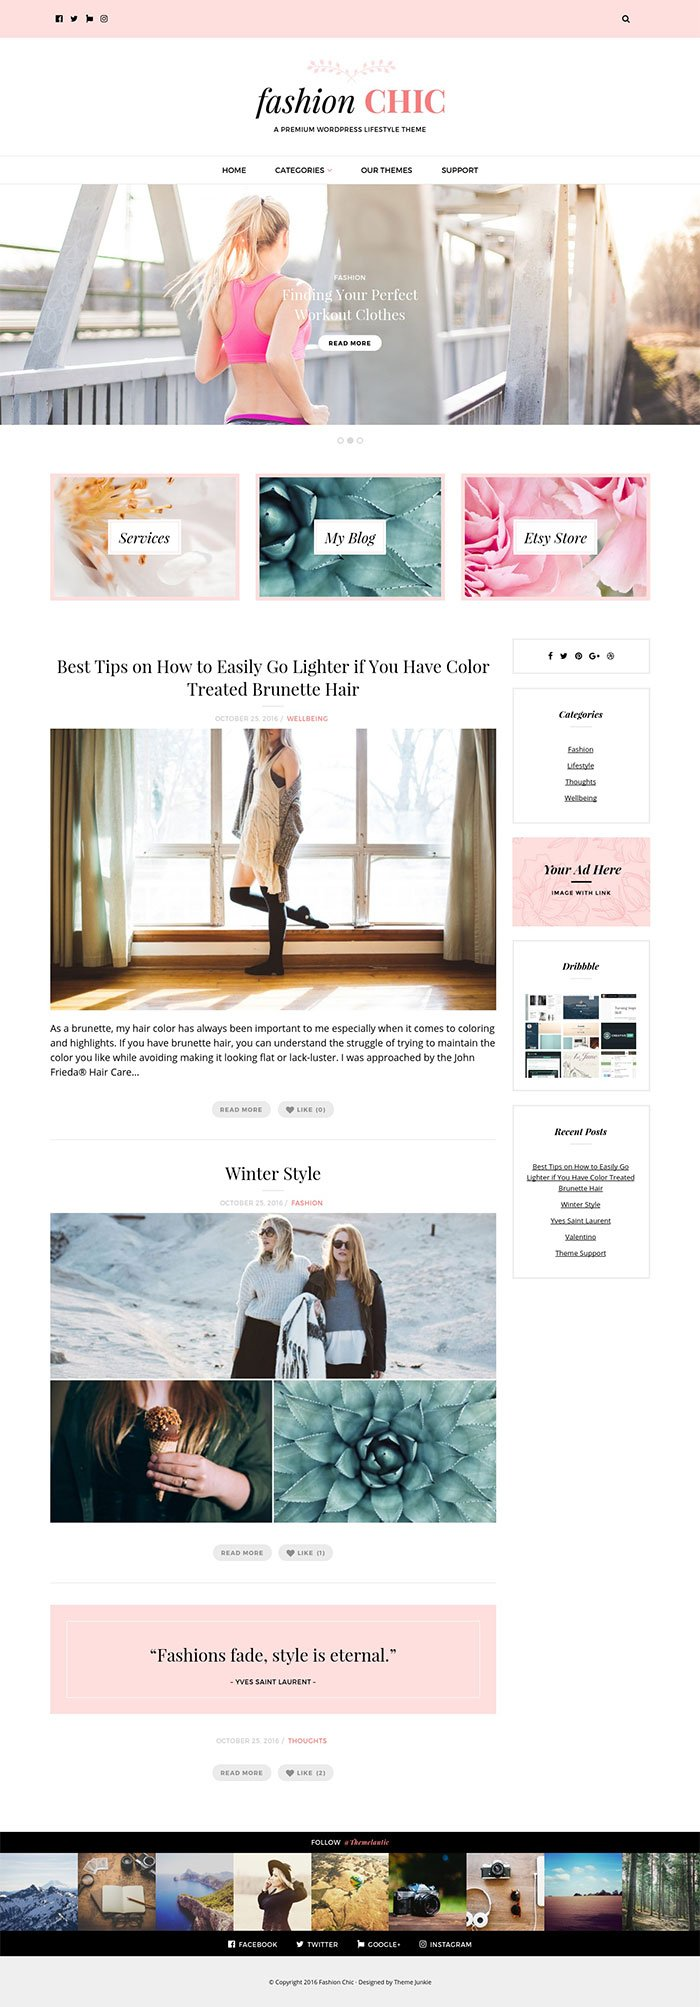 Fashion Chic A Stunning Fashion and Lifestyle Blog WordPress Theme